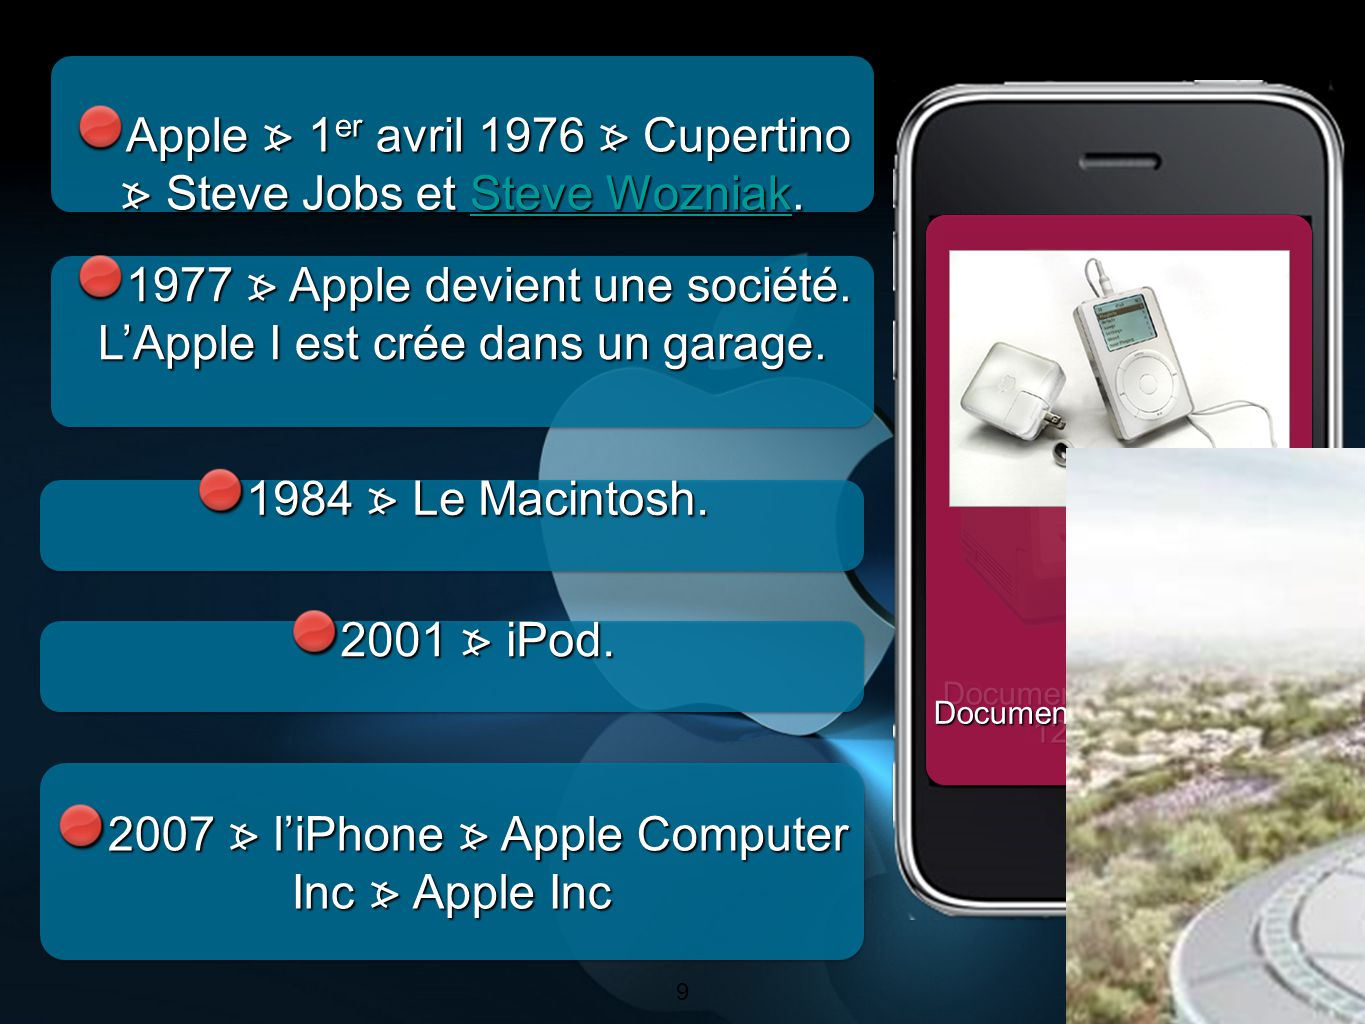 99 Apple 1 er avril 1976 Cupertino Steve Jobs et Steve Wozniak.